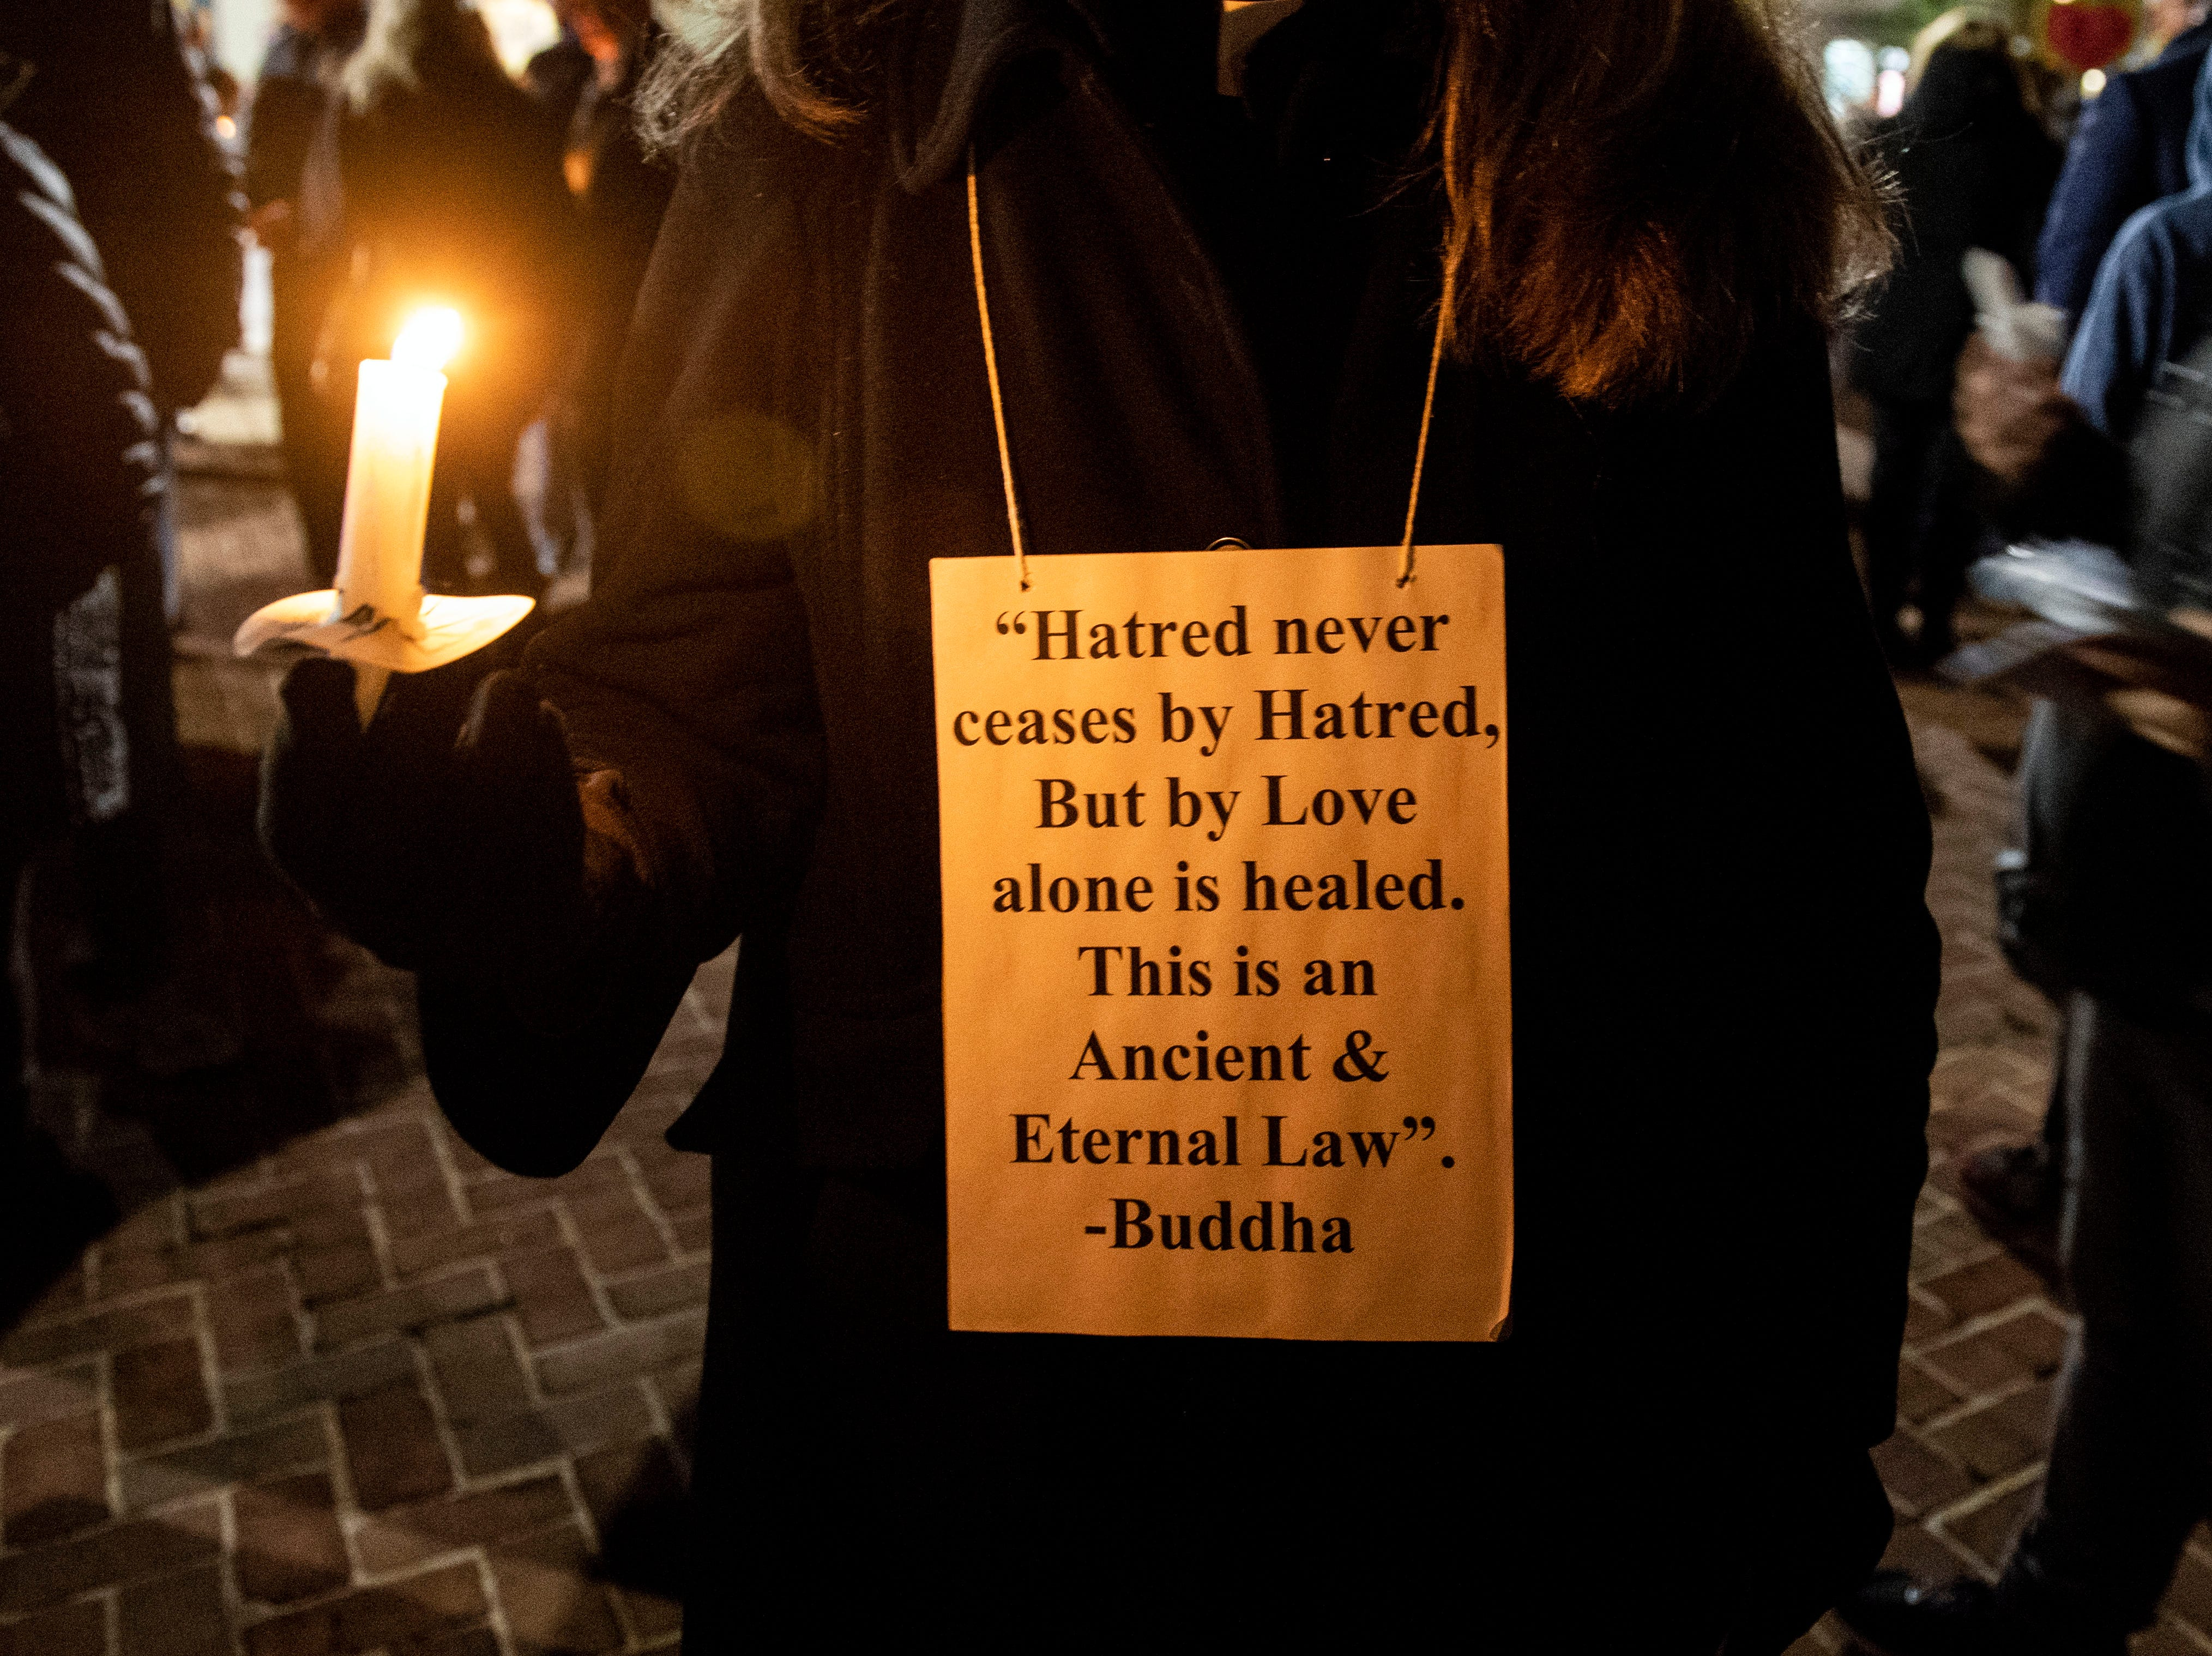 Wearing a Buddha quote around her neck, Cindy Teilazzo holds onto a candle during a candlelight vigil in front of city hall on Monday, Oct. 29, 2018. Hundreds of people gathered for the 'York Vigil against Hate,' mourning the 11 dead from the weekend shooting at Tree of Life synagogue in Pittsburgh.